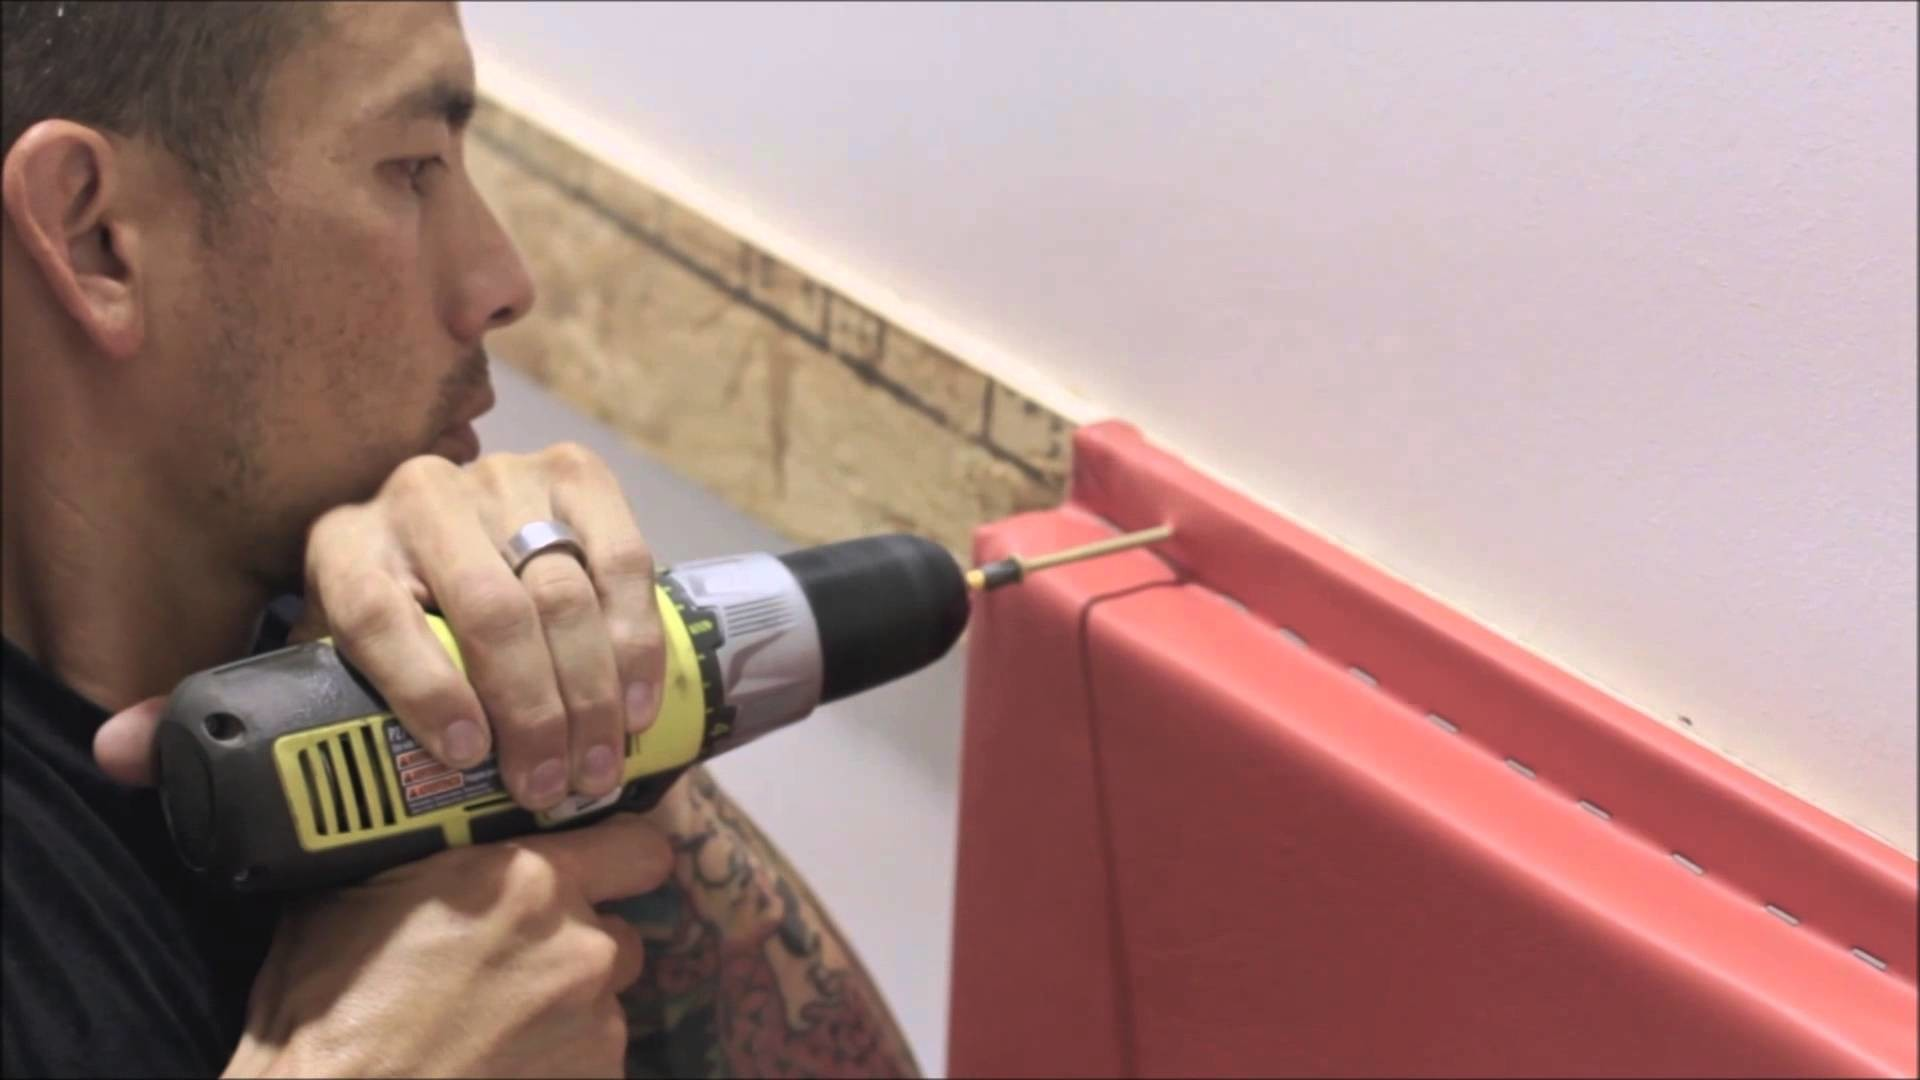 How To: Install Dollamur Wall Panels